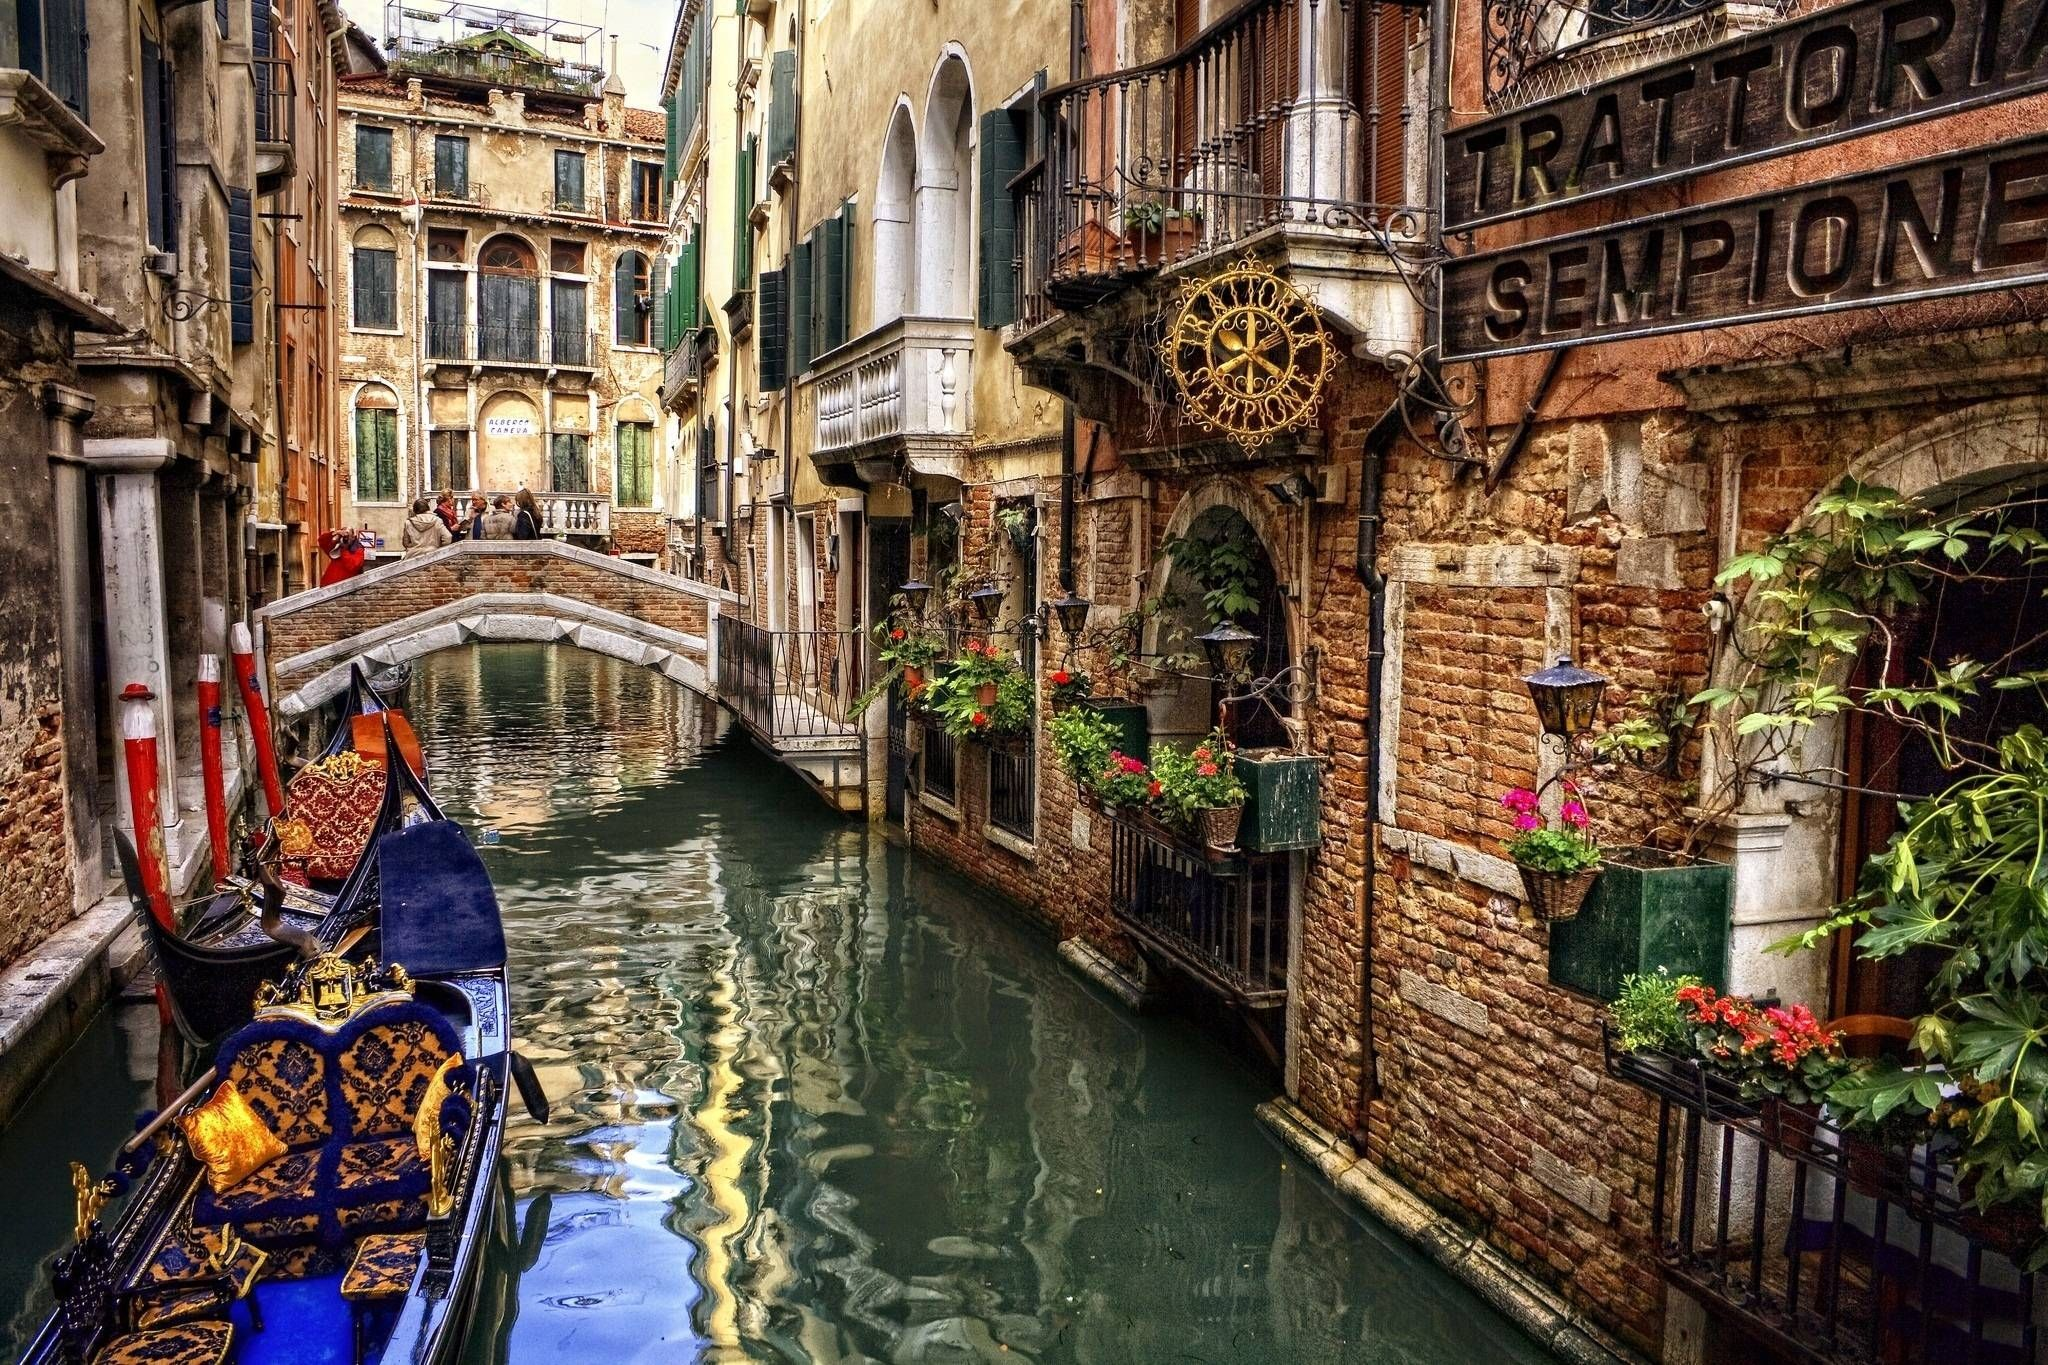 download desktop background venice hd new desktop background venice download download desktop background venice hd